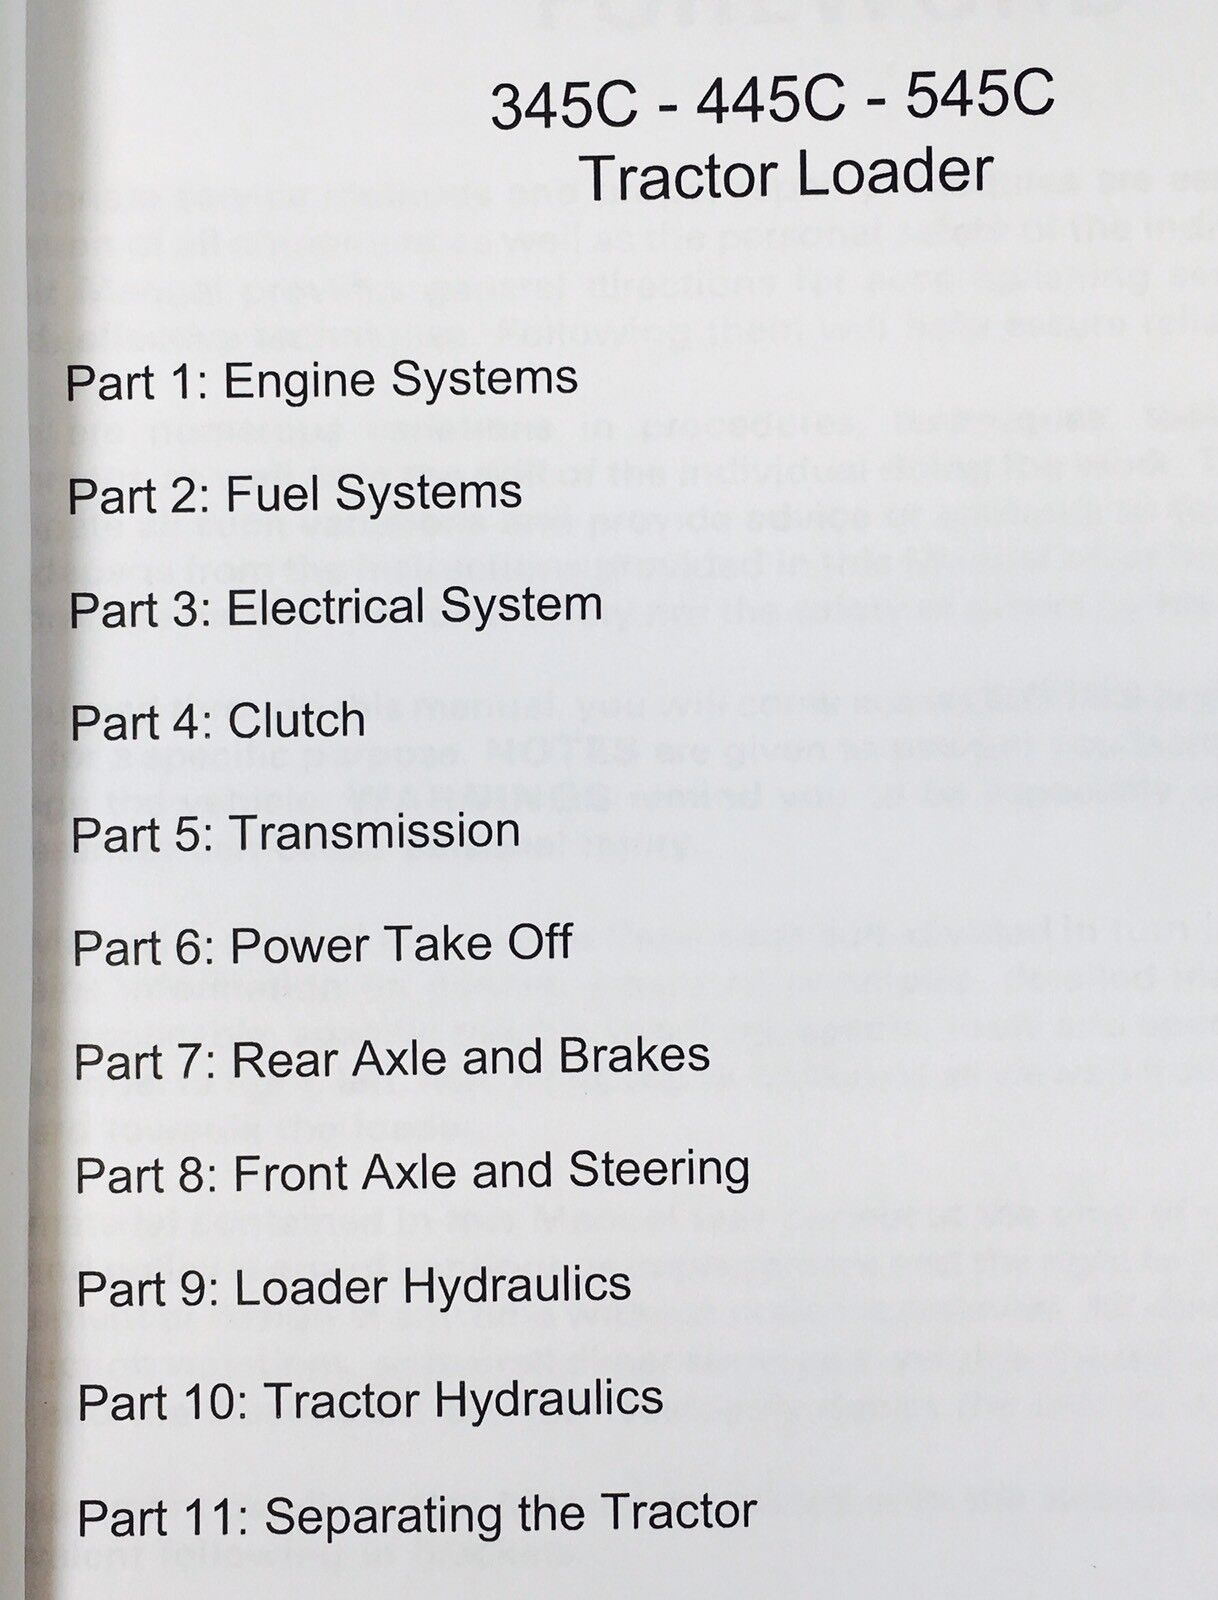 345c Ford Tractor Wiring Diagram Library Orders Placed Before Noon Central Time Generally Get Shipped The Same Day 445c 545c Loader Service Repair Manual